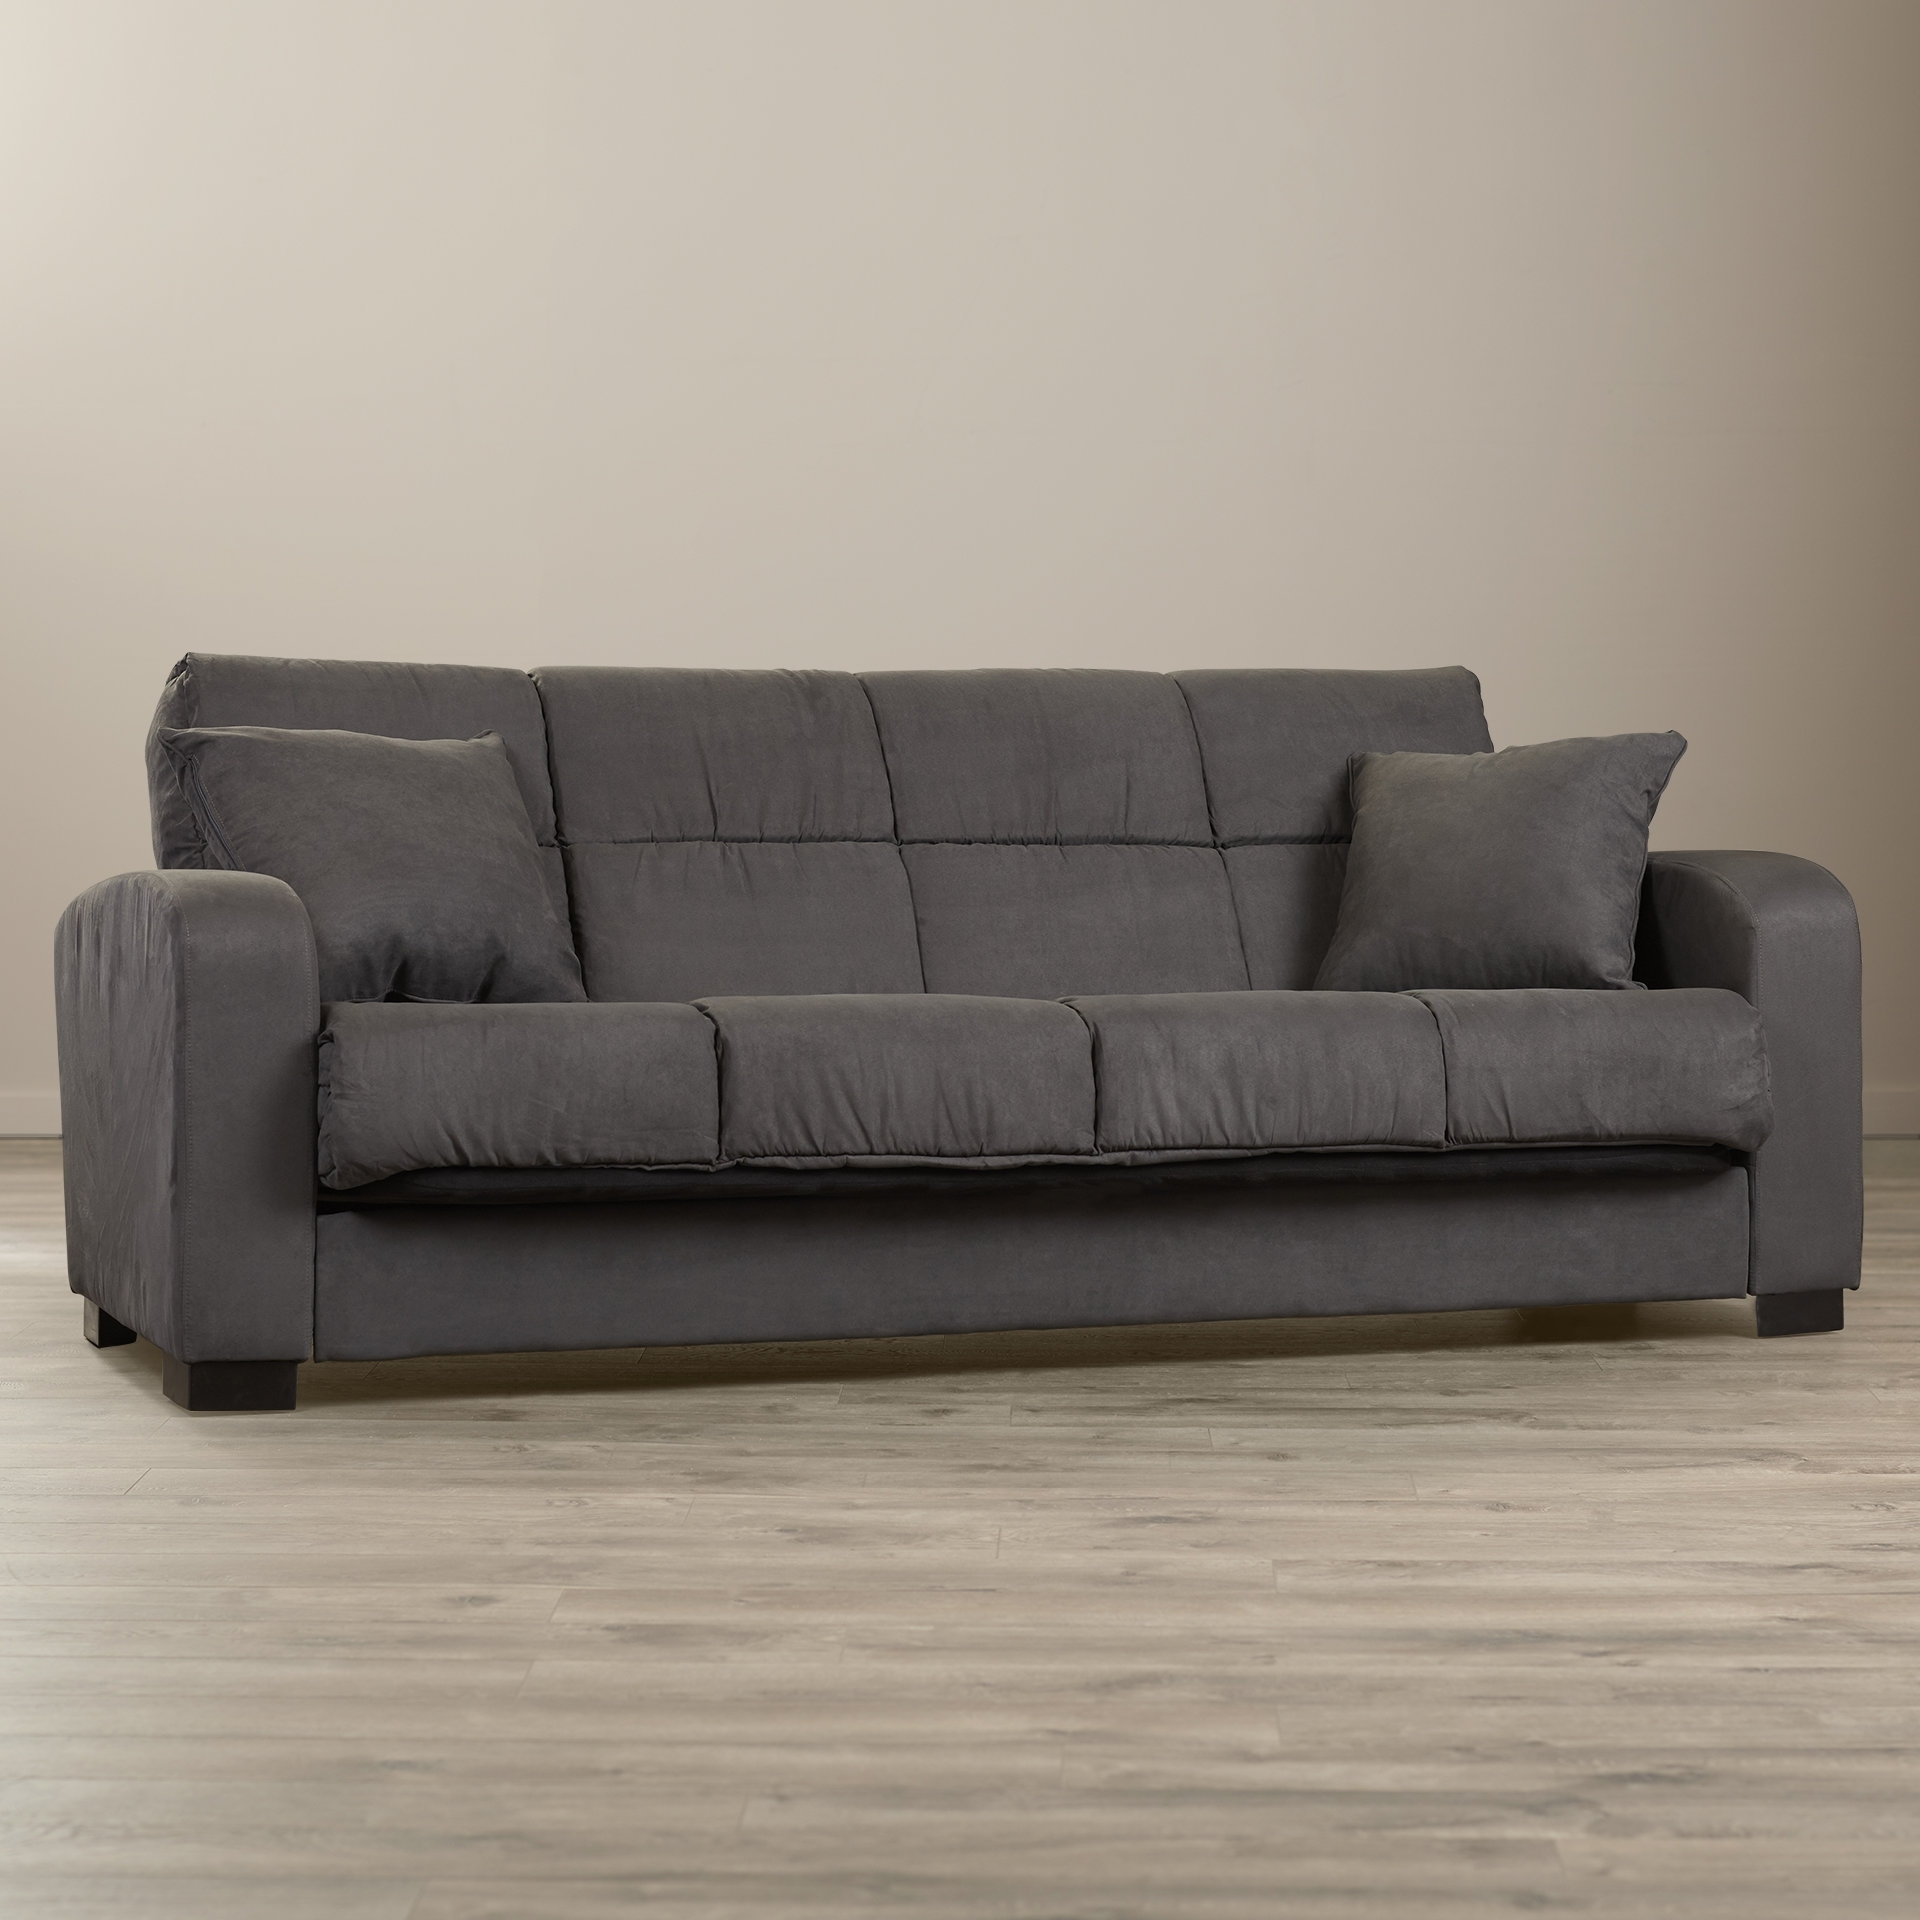 Widely Used Sofa : Serta Rudolpho Convertible Sleeper Sofa Jennifer With Regard To Seattle Sectional Sofas (View 20 of 20)